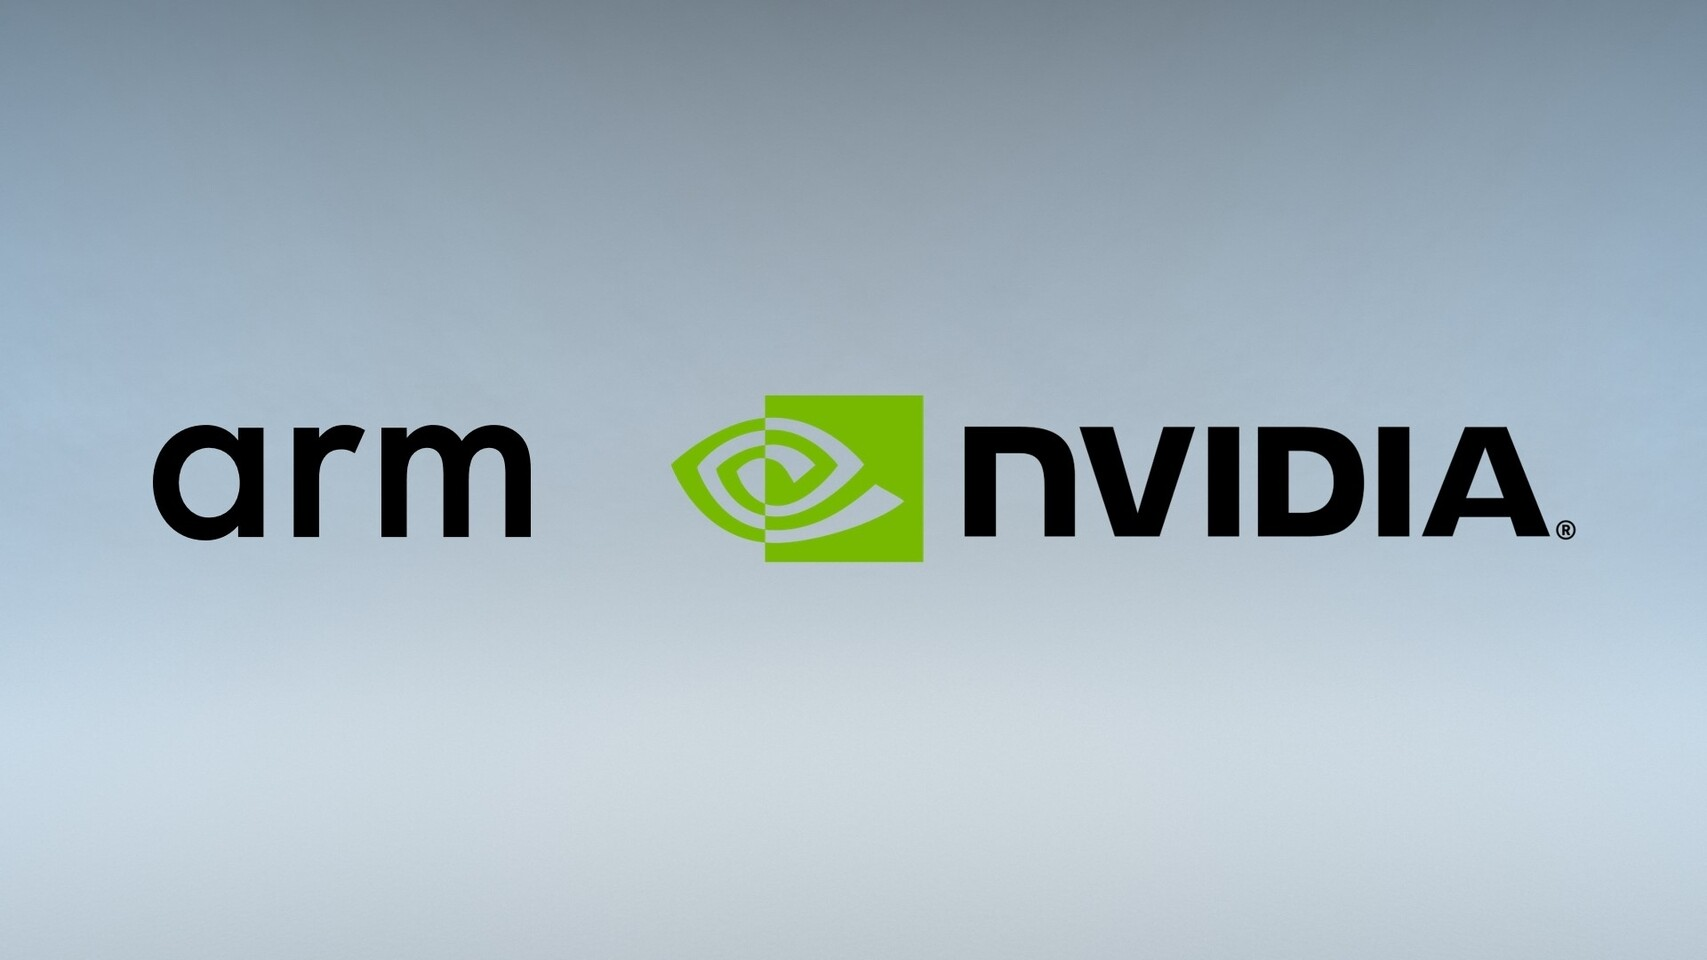 Nvidia's acquisition of ARM Holding faces resistance from the likes of Google, Qualcomm, and Microsoft